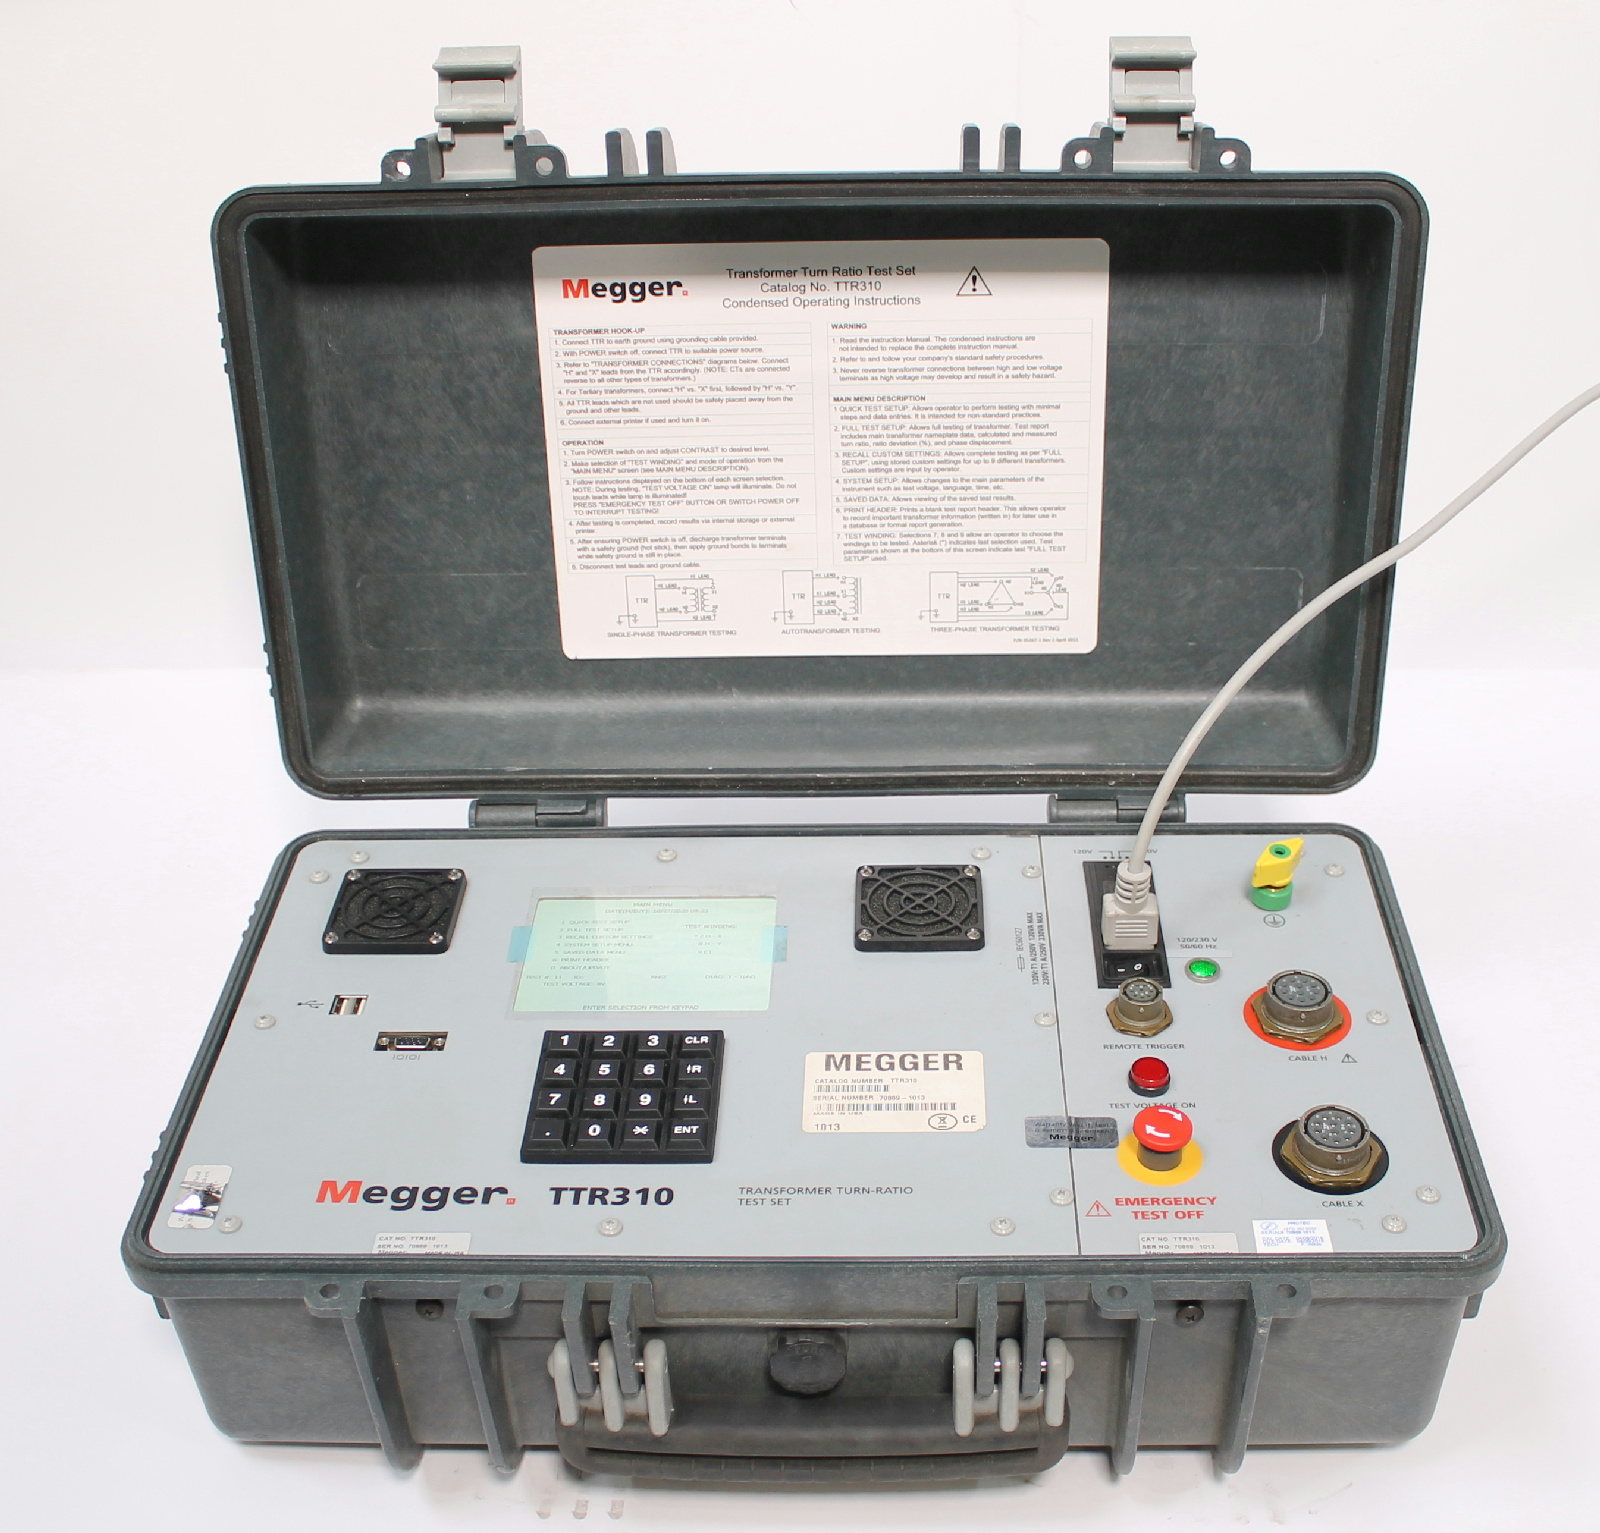 Megger Ttr310 Three Phase Transformer Turns Ratio Tester